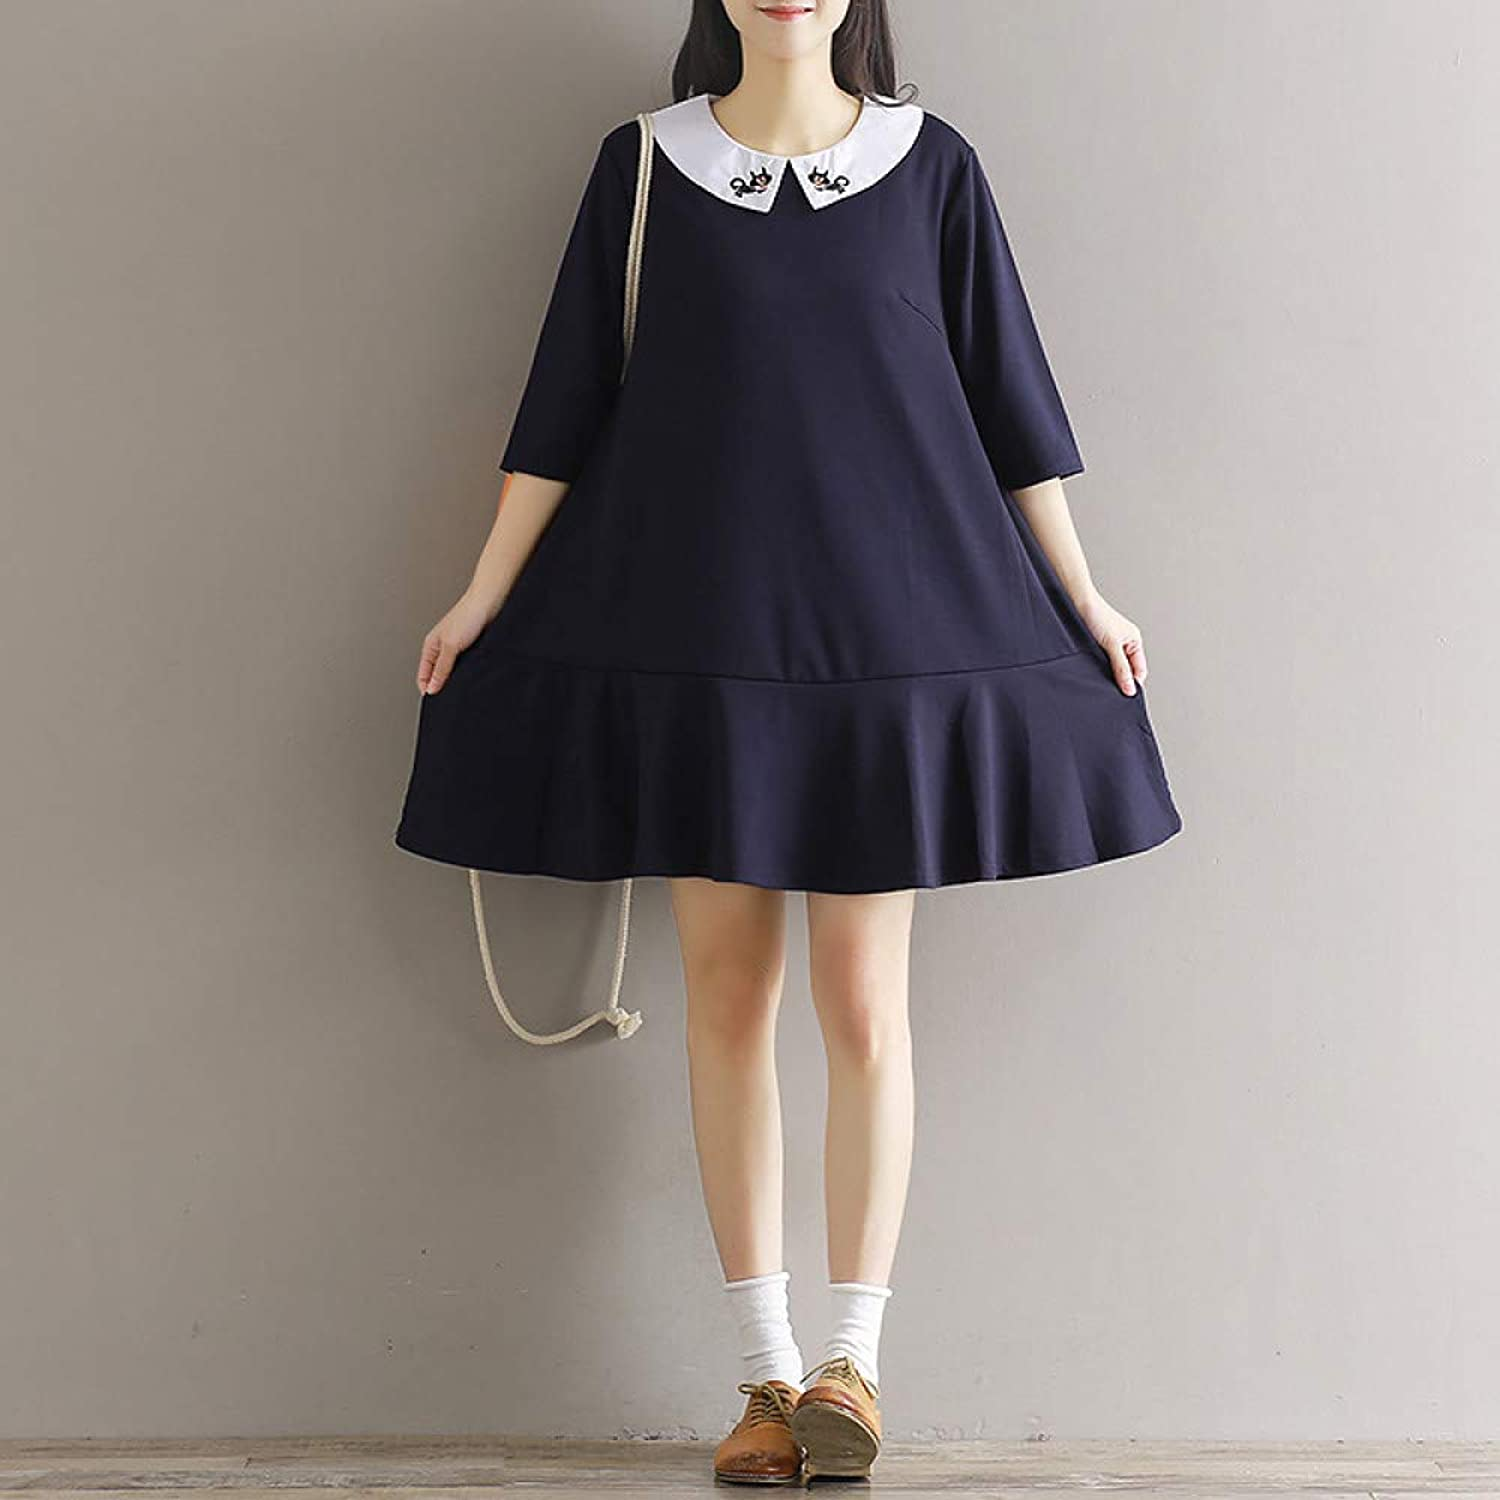 Cxlyq Dresses Embroidered Doll Collar College Wind Long Section Cotton and Linen Dress Women's Ruffle